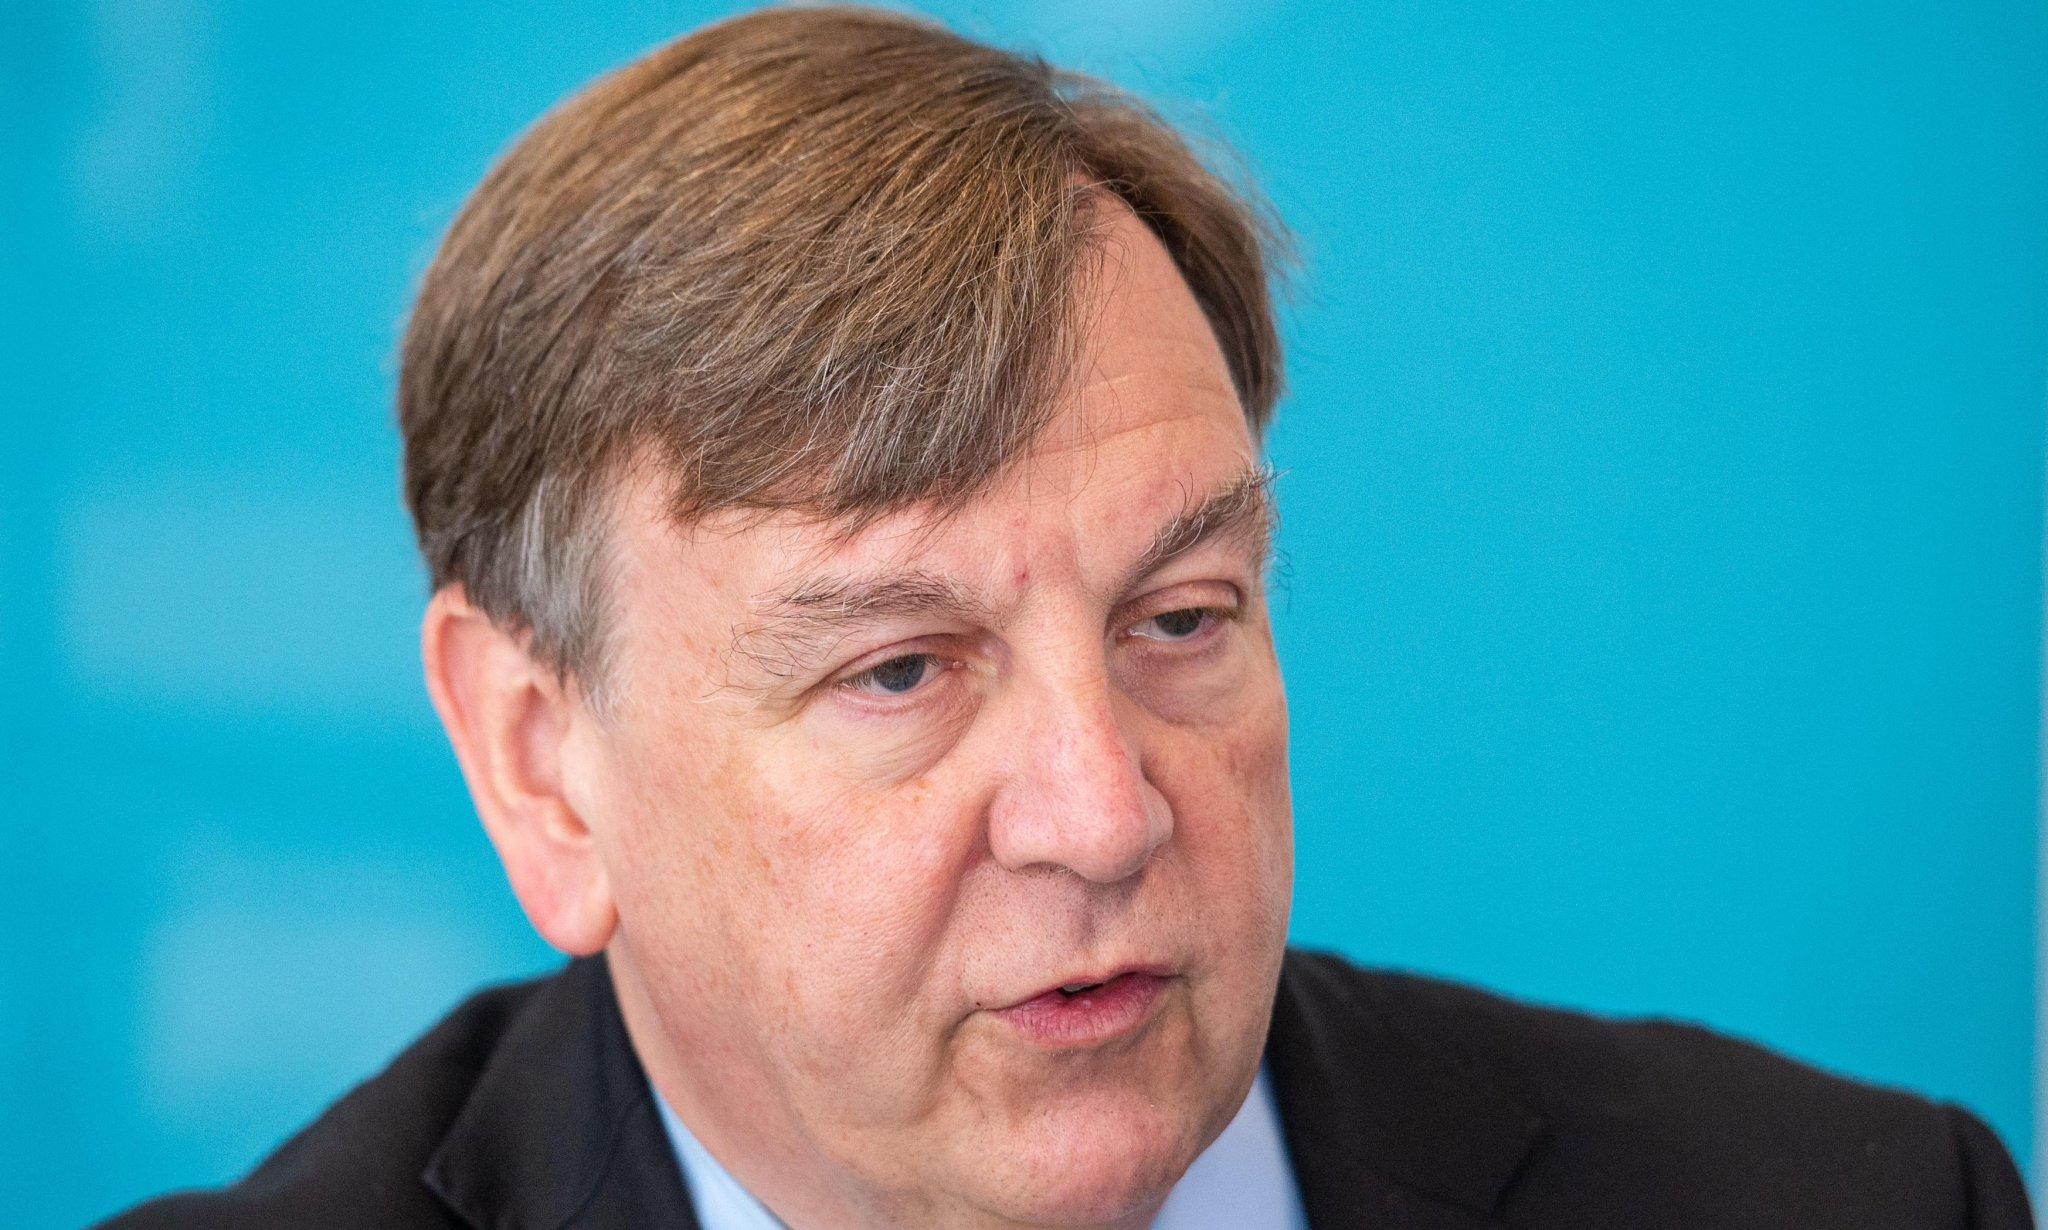 John Whittingdale and Nick Gibb go as reshuffle continues